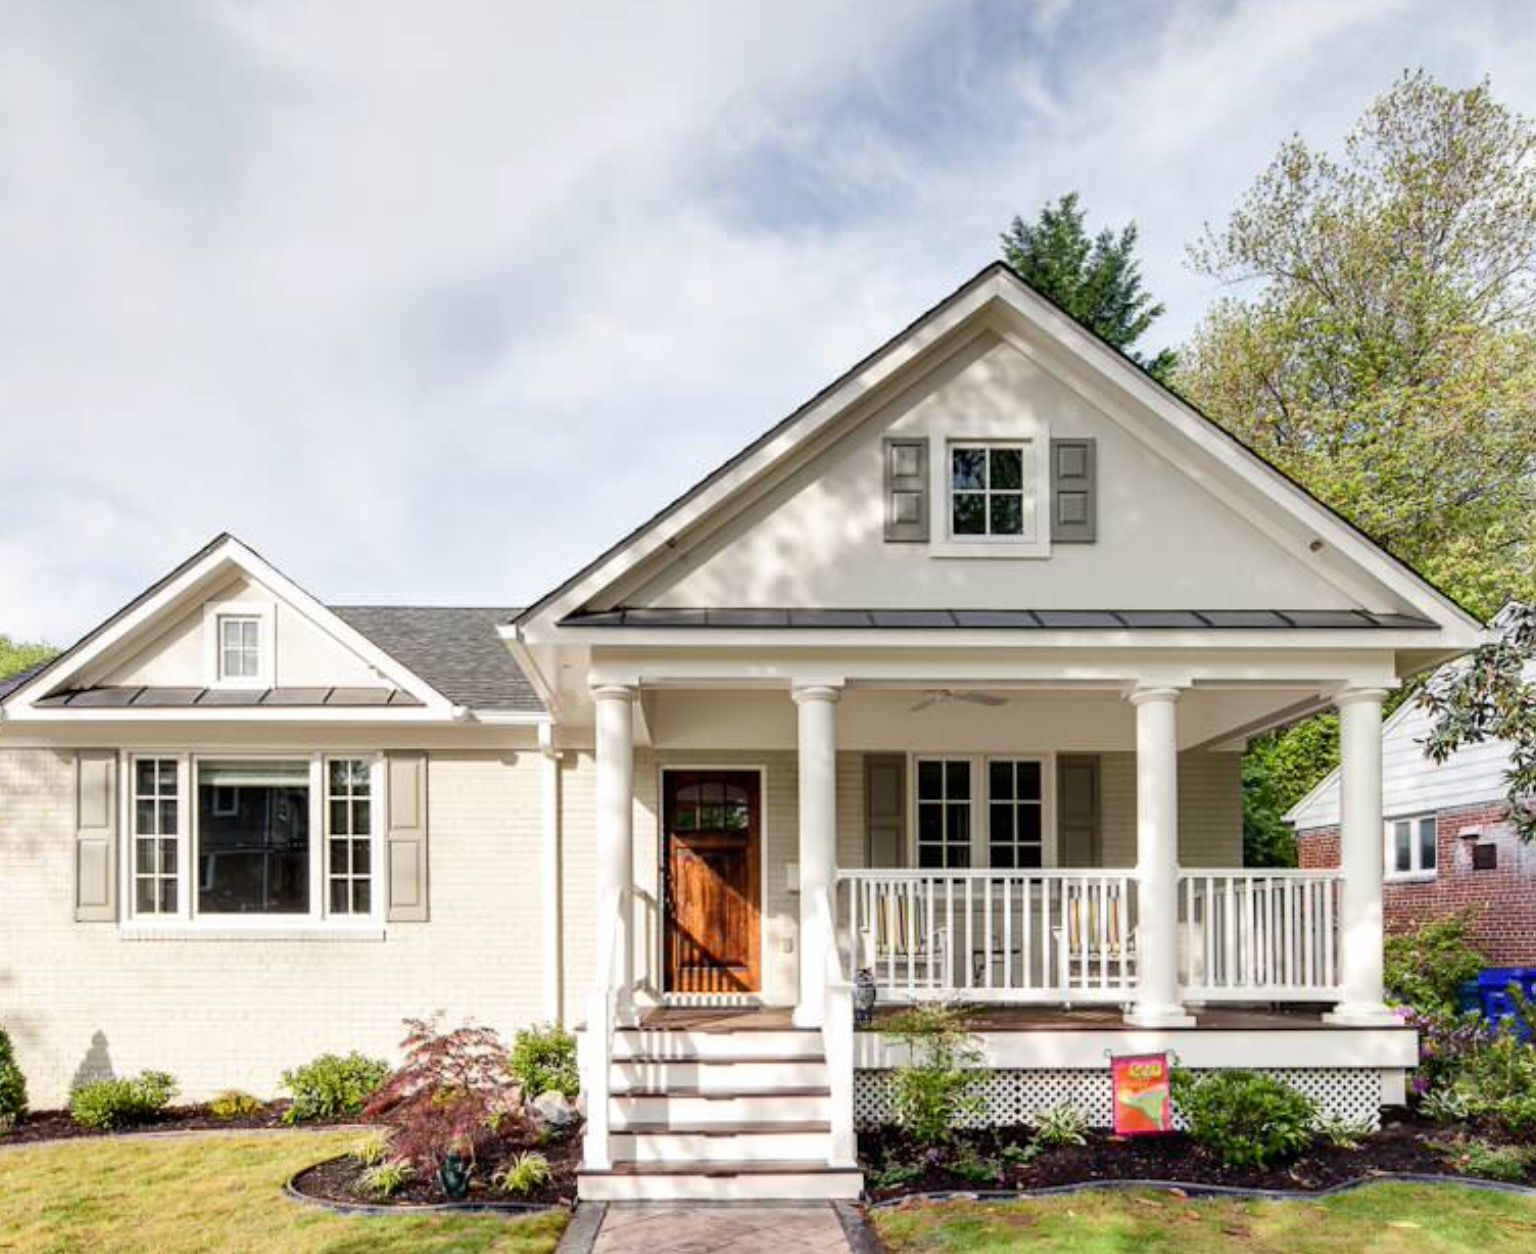 Exterior paint colors for craftsman style homes most - Benjamin moore white dove exterior ...